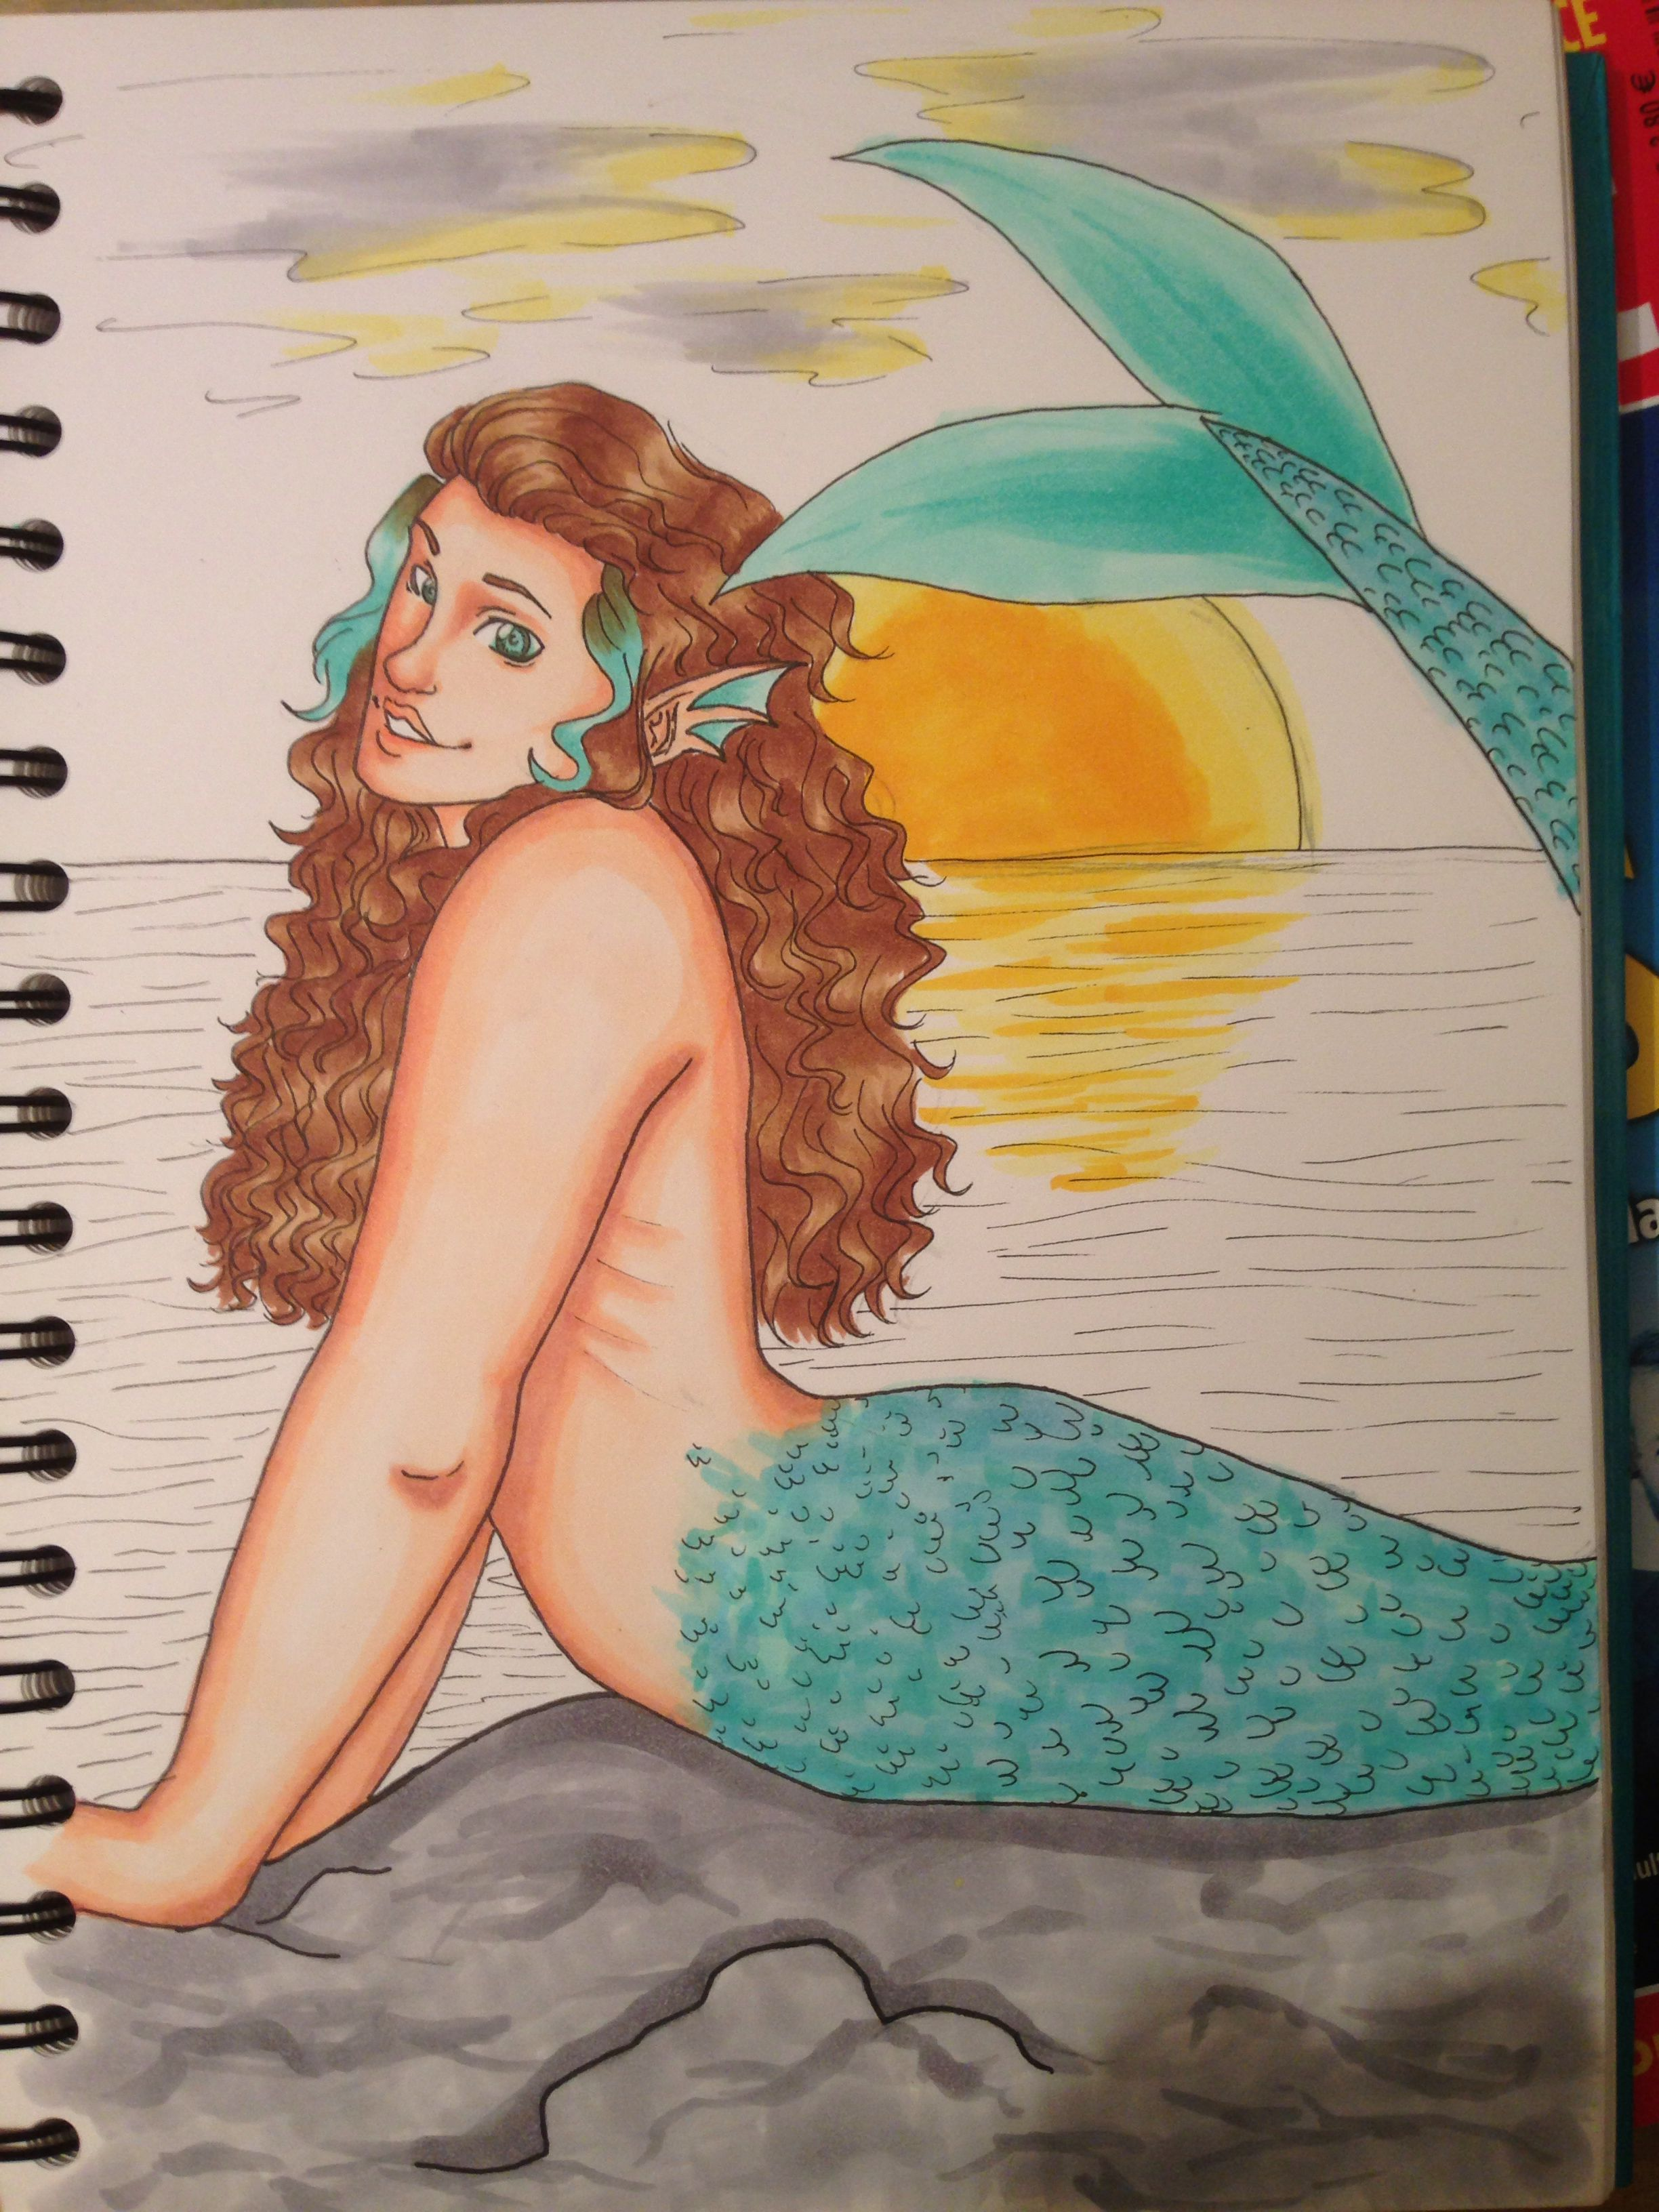 mermaid coloring test some obvious flaws august 2013 my